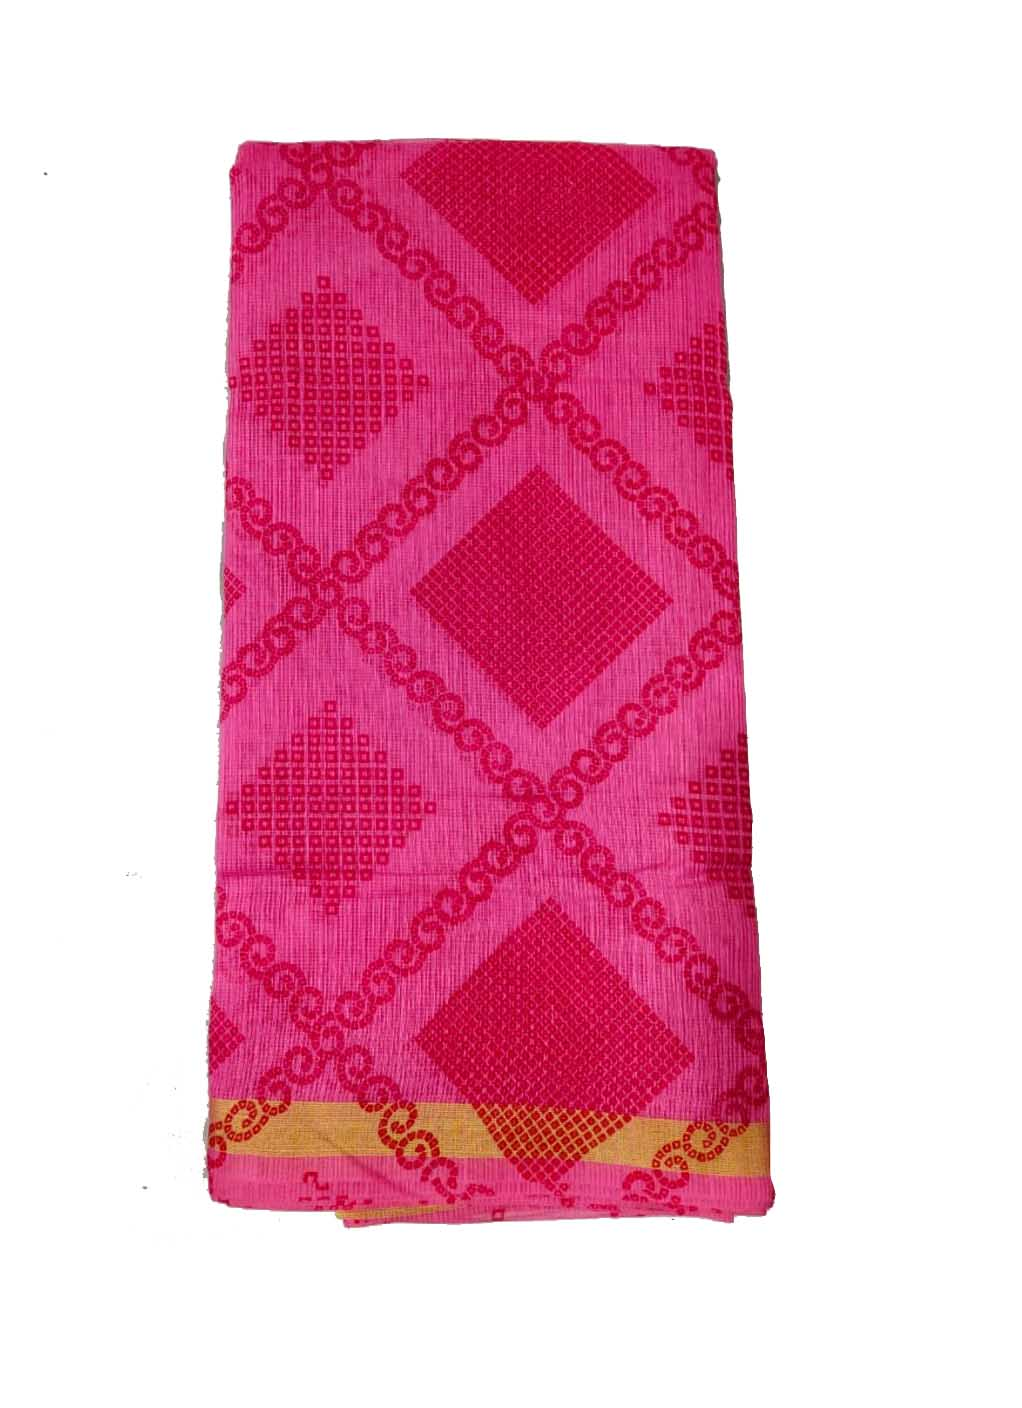 WOMEN SYNTHETIC DORIYA SAREE WITH BLOUSE-PINK-DF JULY SUMMER COOL 05